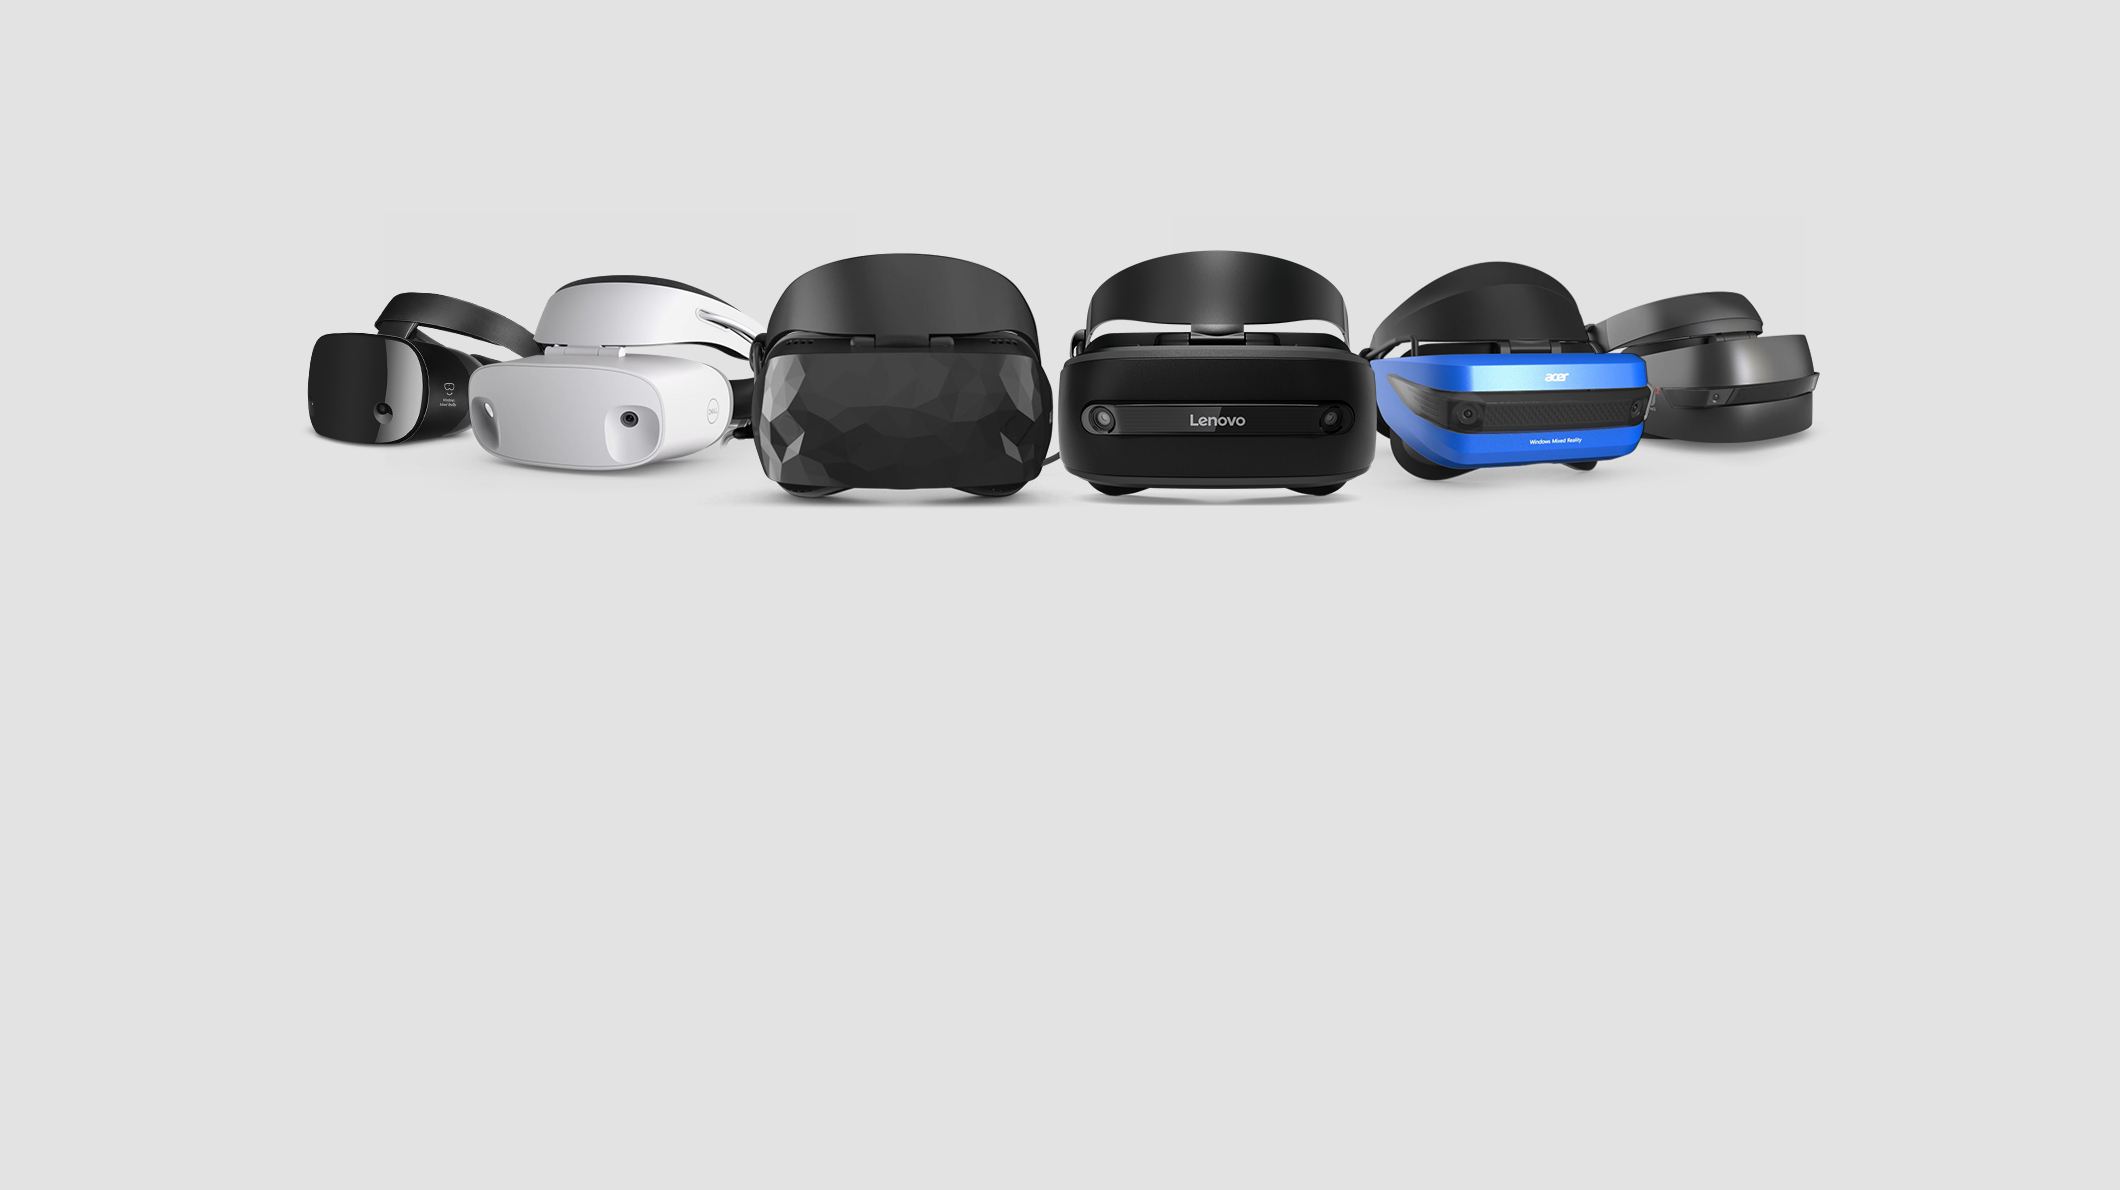 Windows Mixed Reality headsets